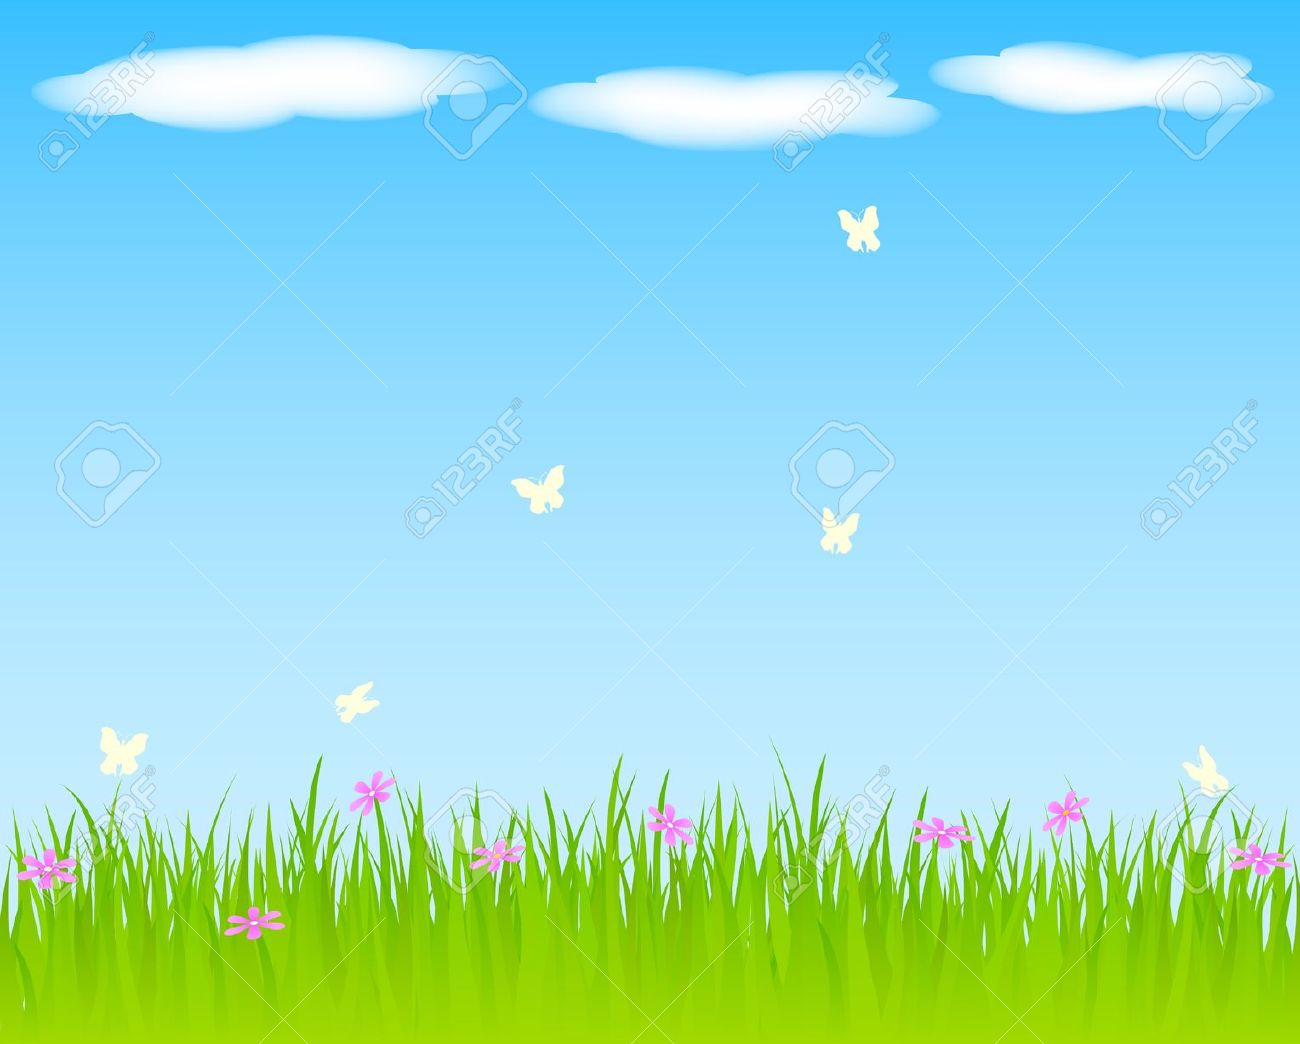 Free Springtime Background Cliparts, Download Free Clip Art, Free ... clip free stock